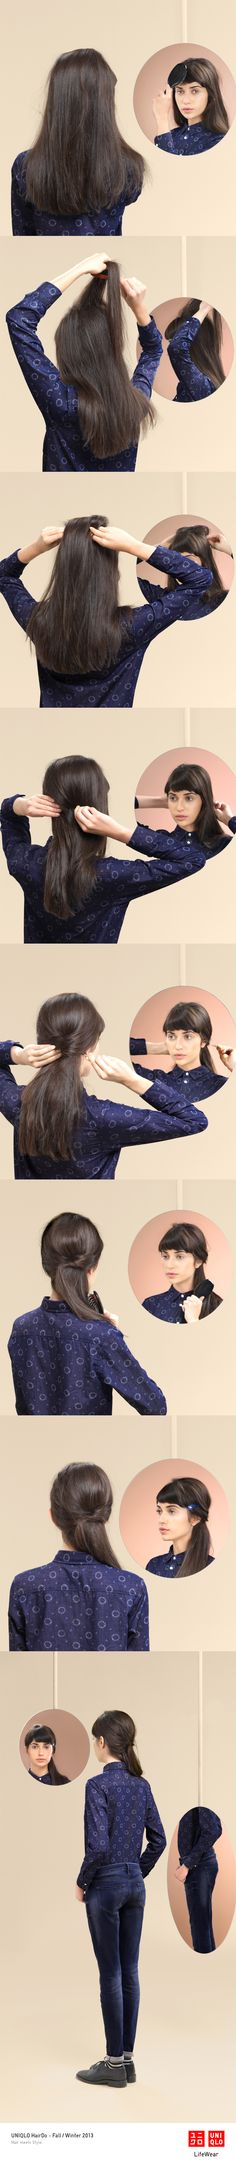 """THE LOW DOWN"" : A quick and easy style, great with a pair of jeans for a day outside. Click the image for DIY instructions! #Twist #Hair #Hairstyle #DIY #UNIQLO #HairDo"